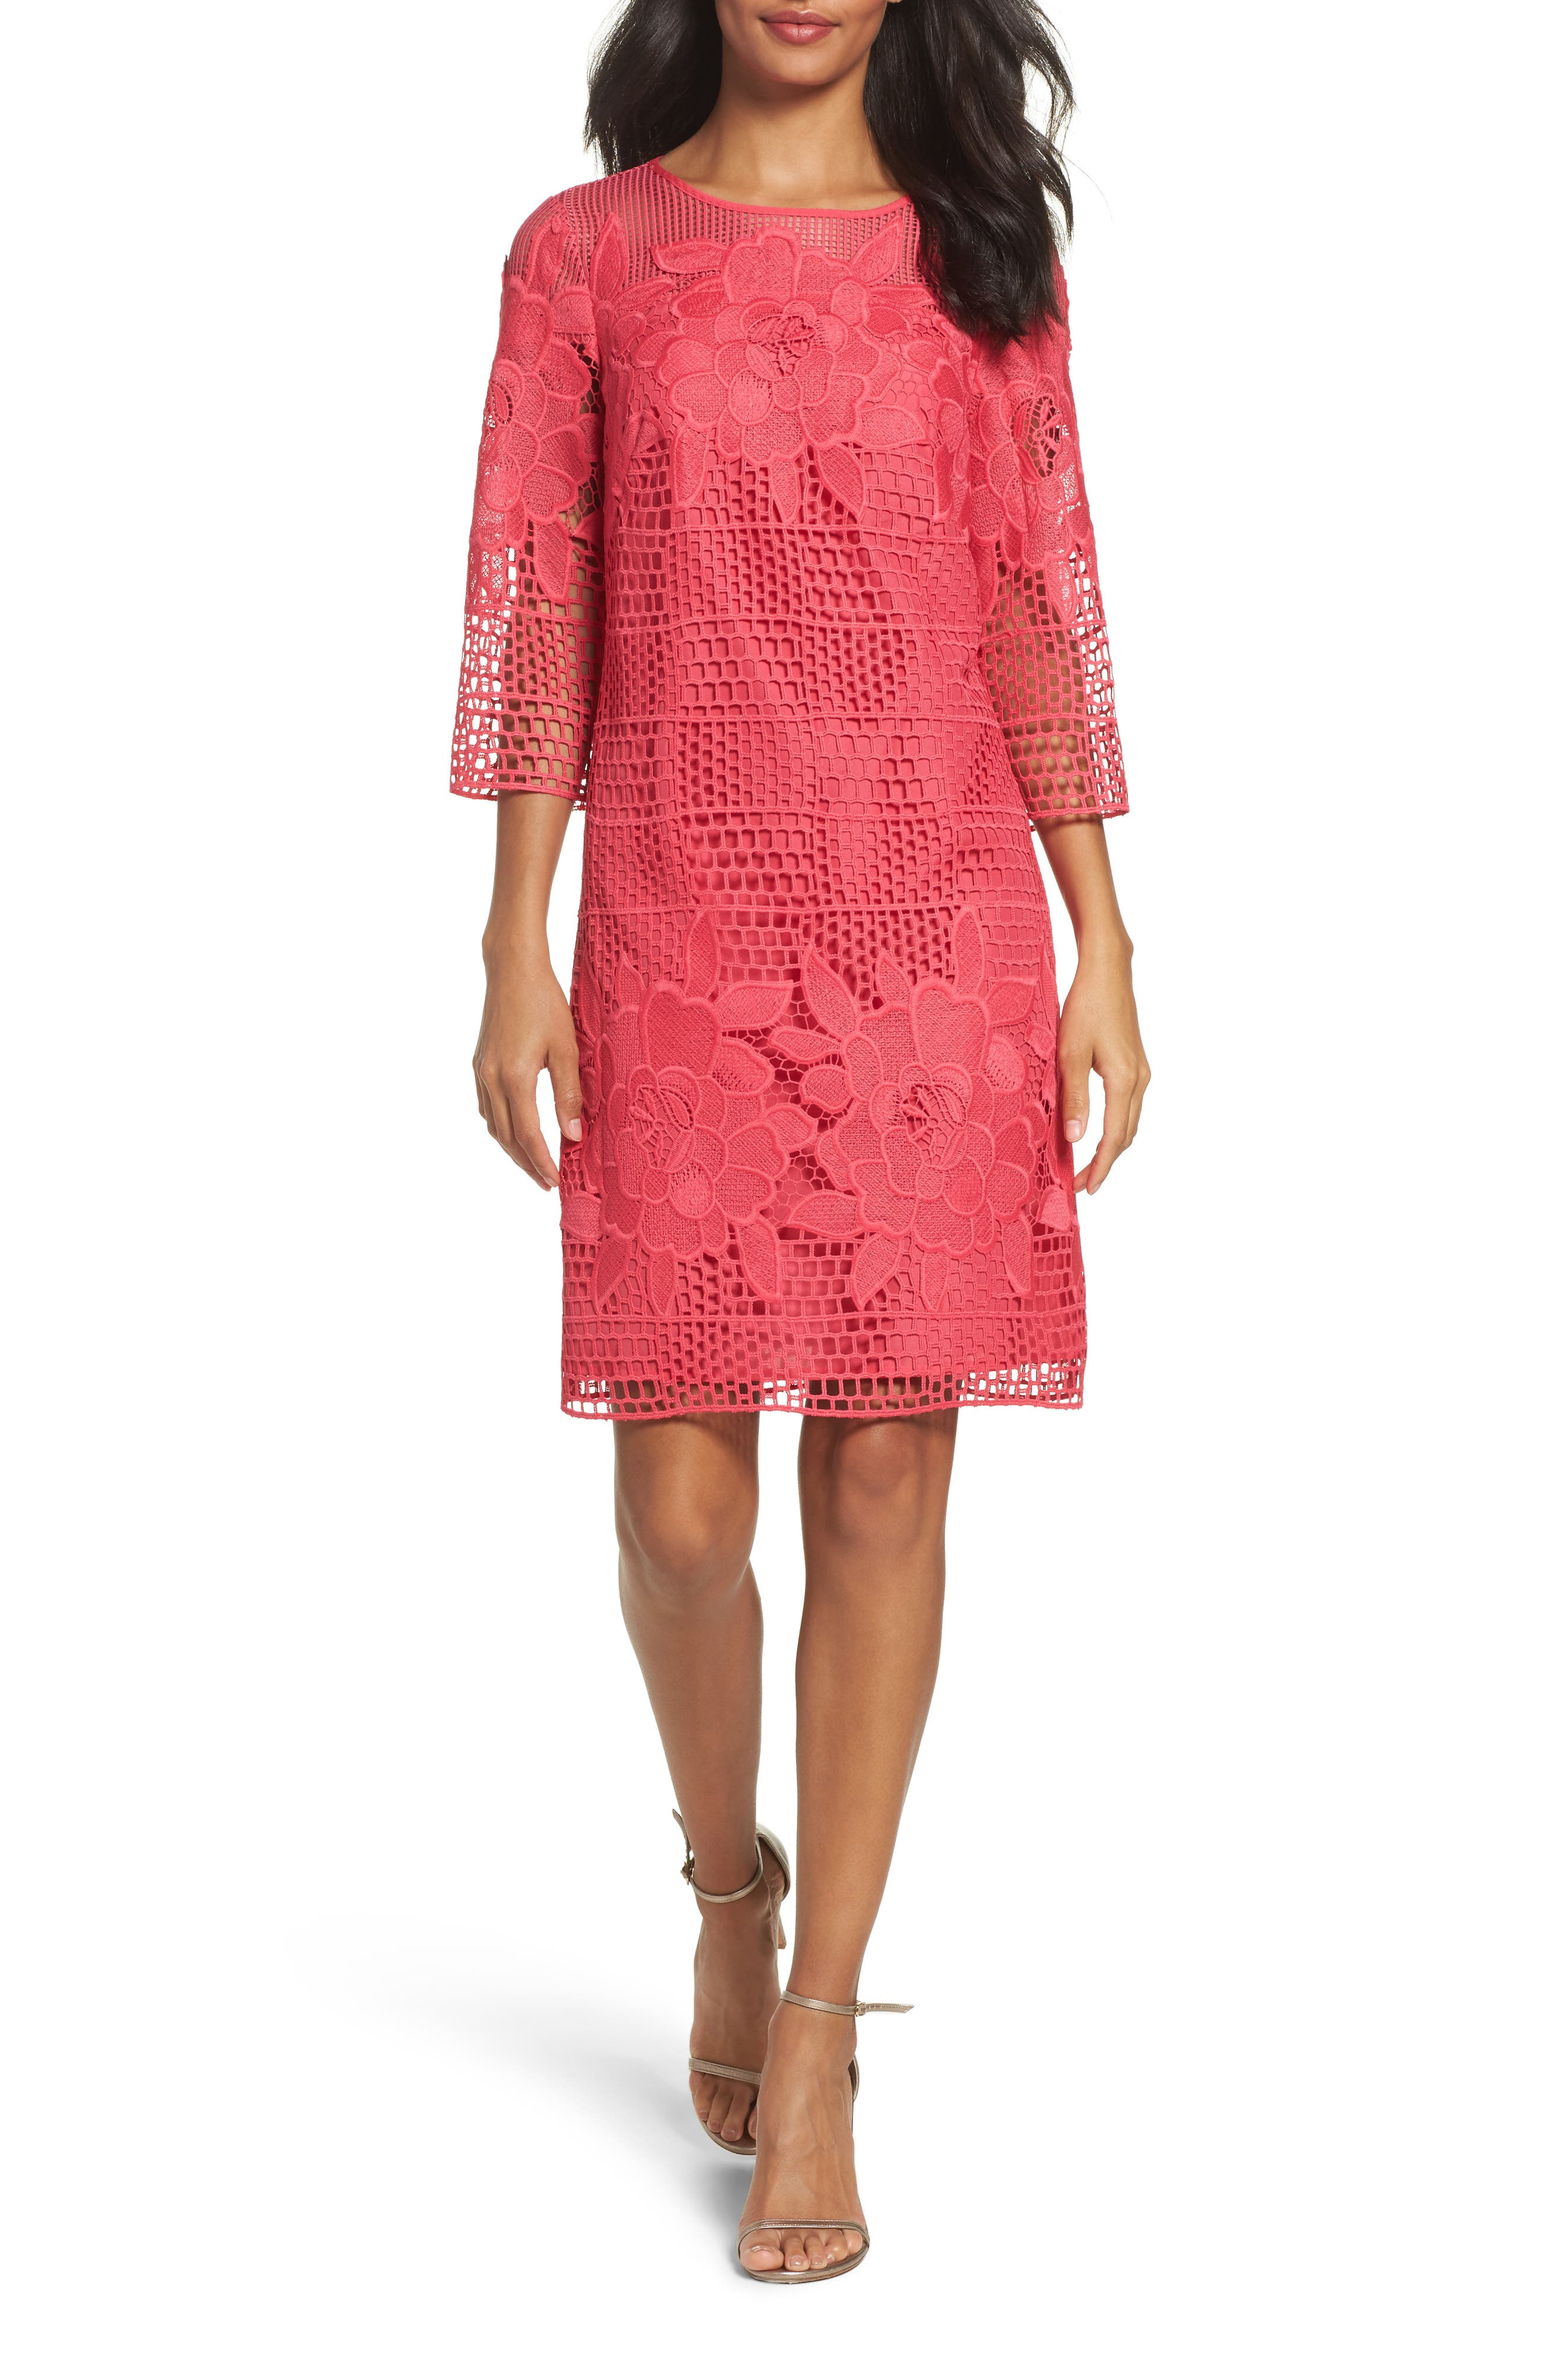 Adrianna Papell Lace A-Line Dress